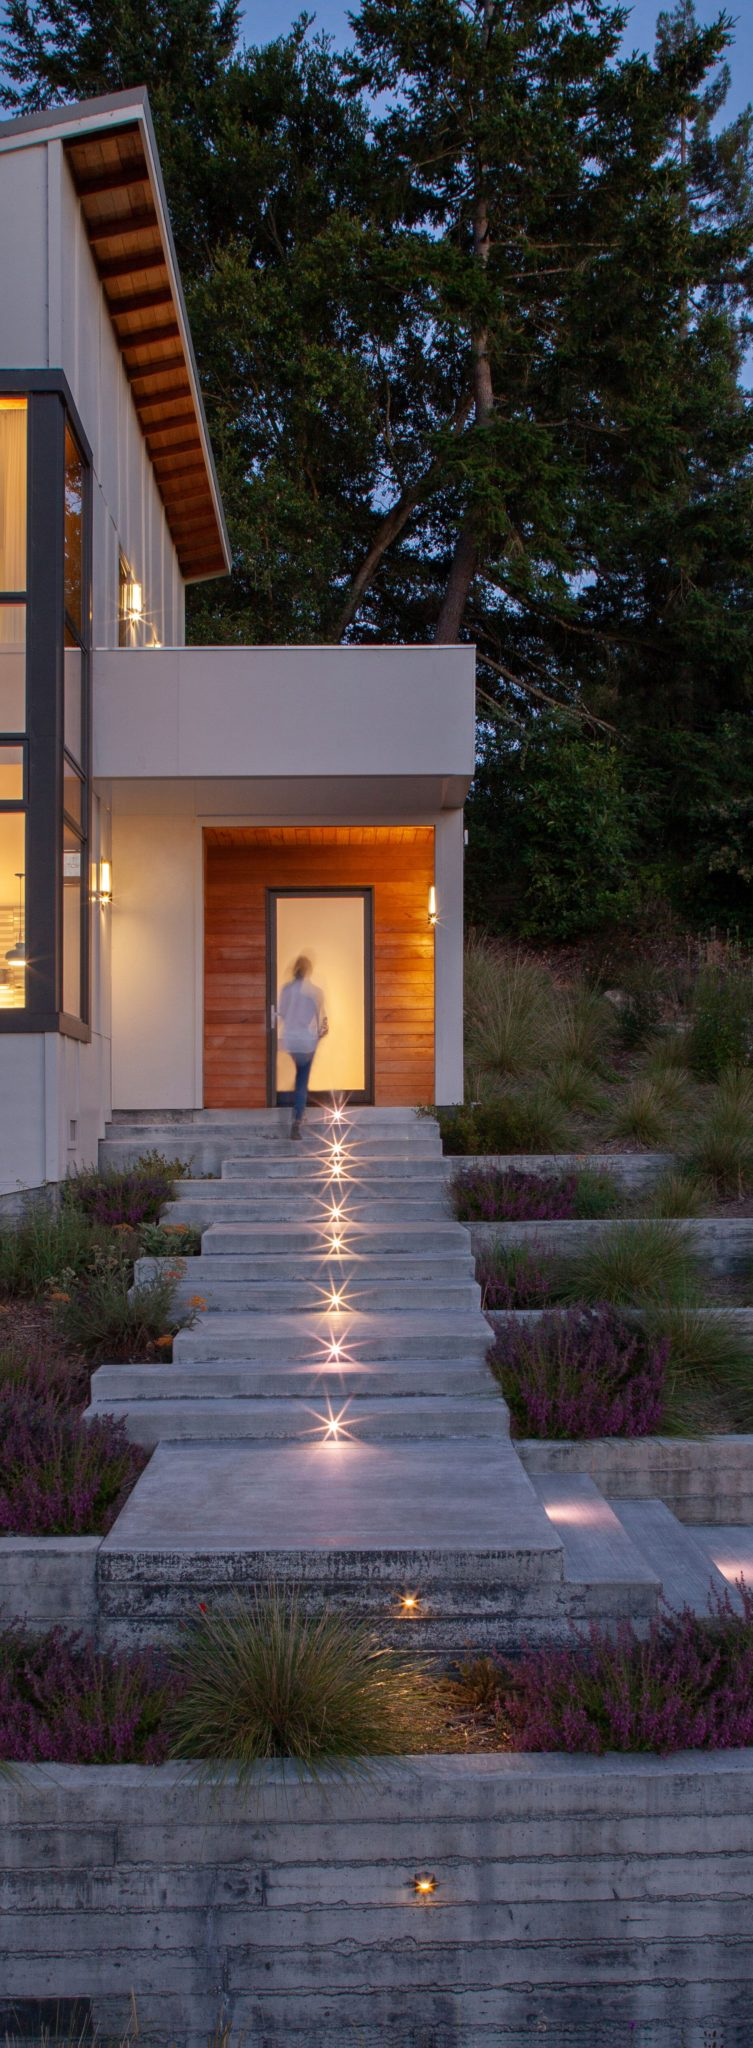 The exterior lighting is by Modern Forms, while the lighting inside the home is by Tech Lighting.